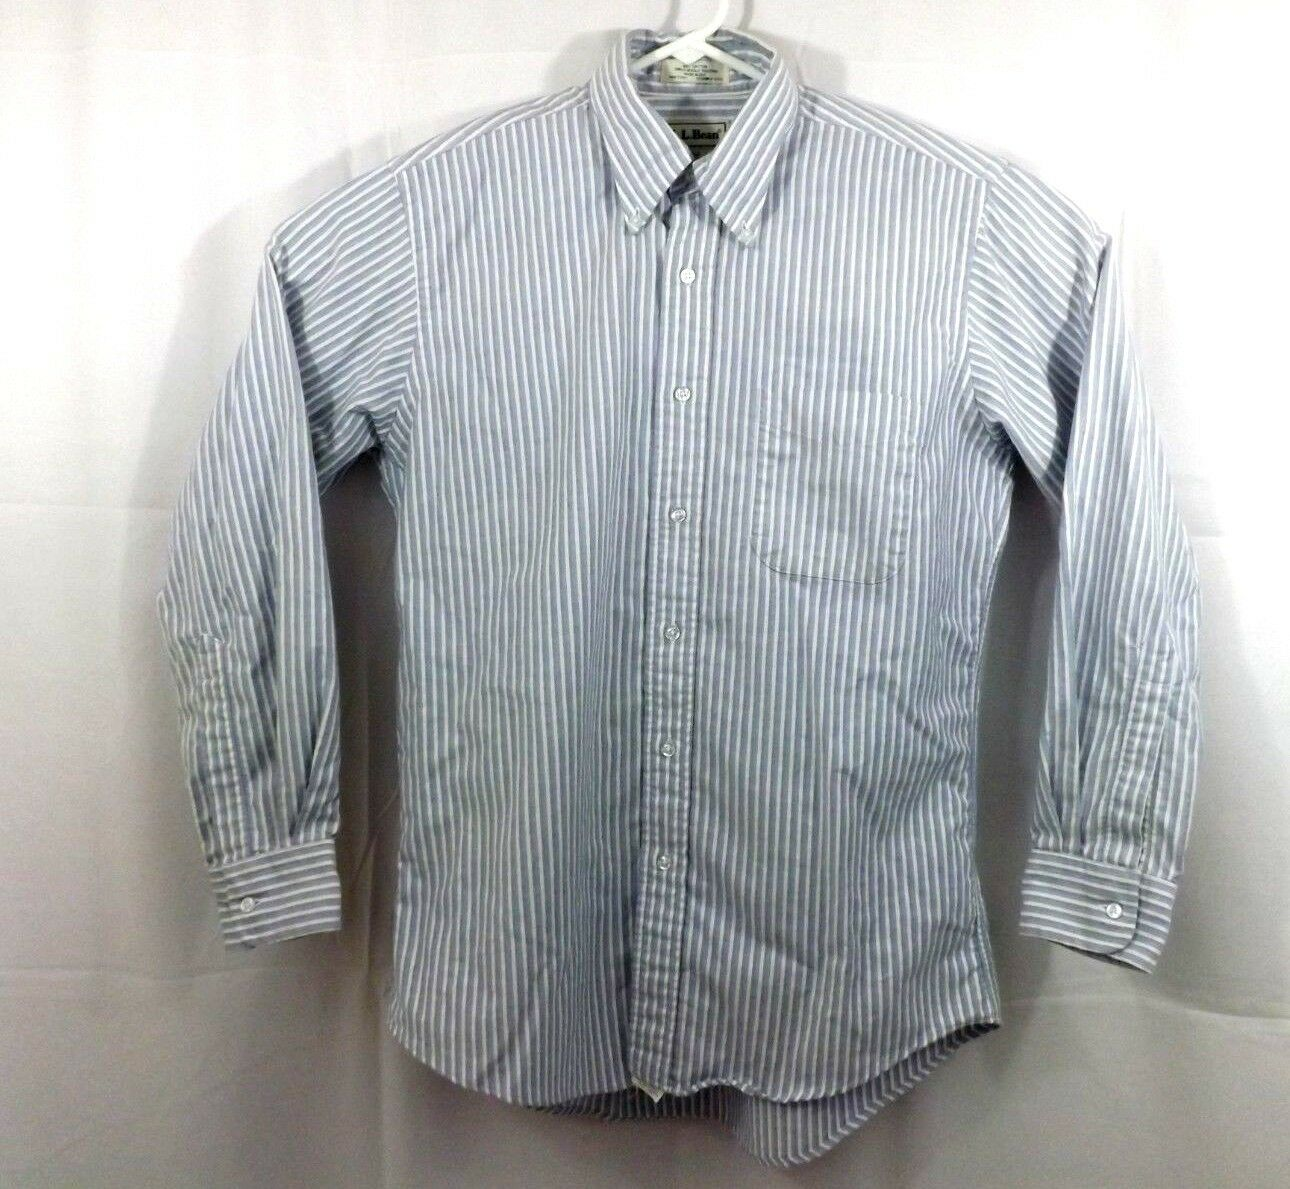 LL Bean Button Down Shirt Single Needle Tailoring bluee Stripe 15.5 33 Made in US